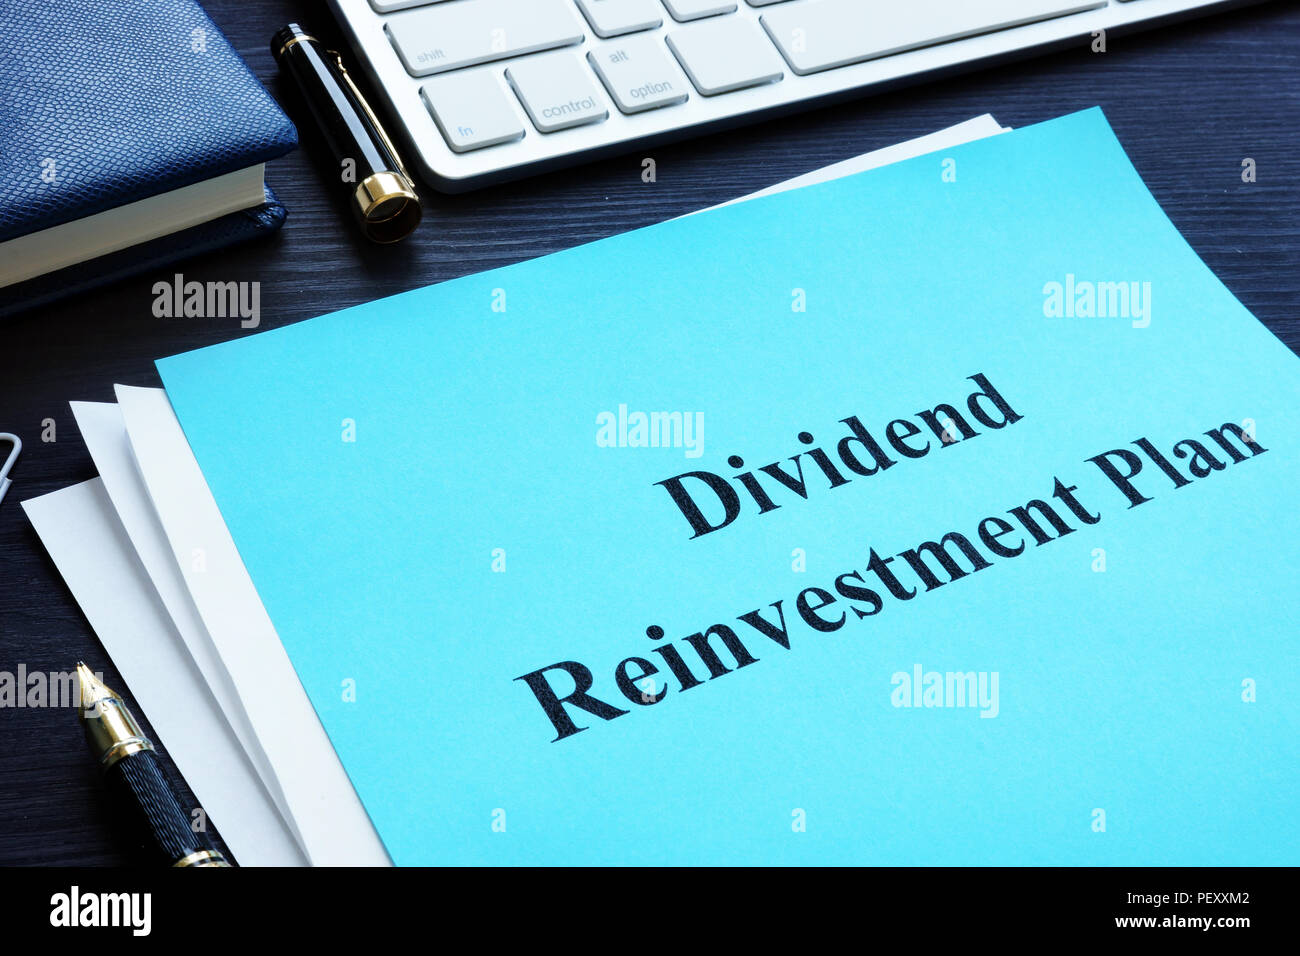 Dividend Reinvestment Plan - DRIP on the desk. - Stock Image